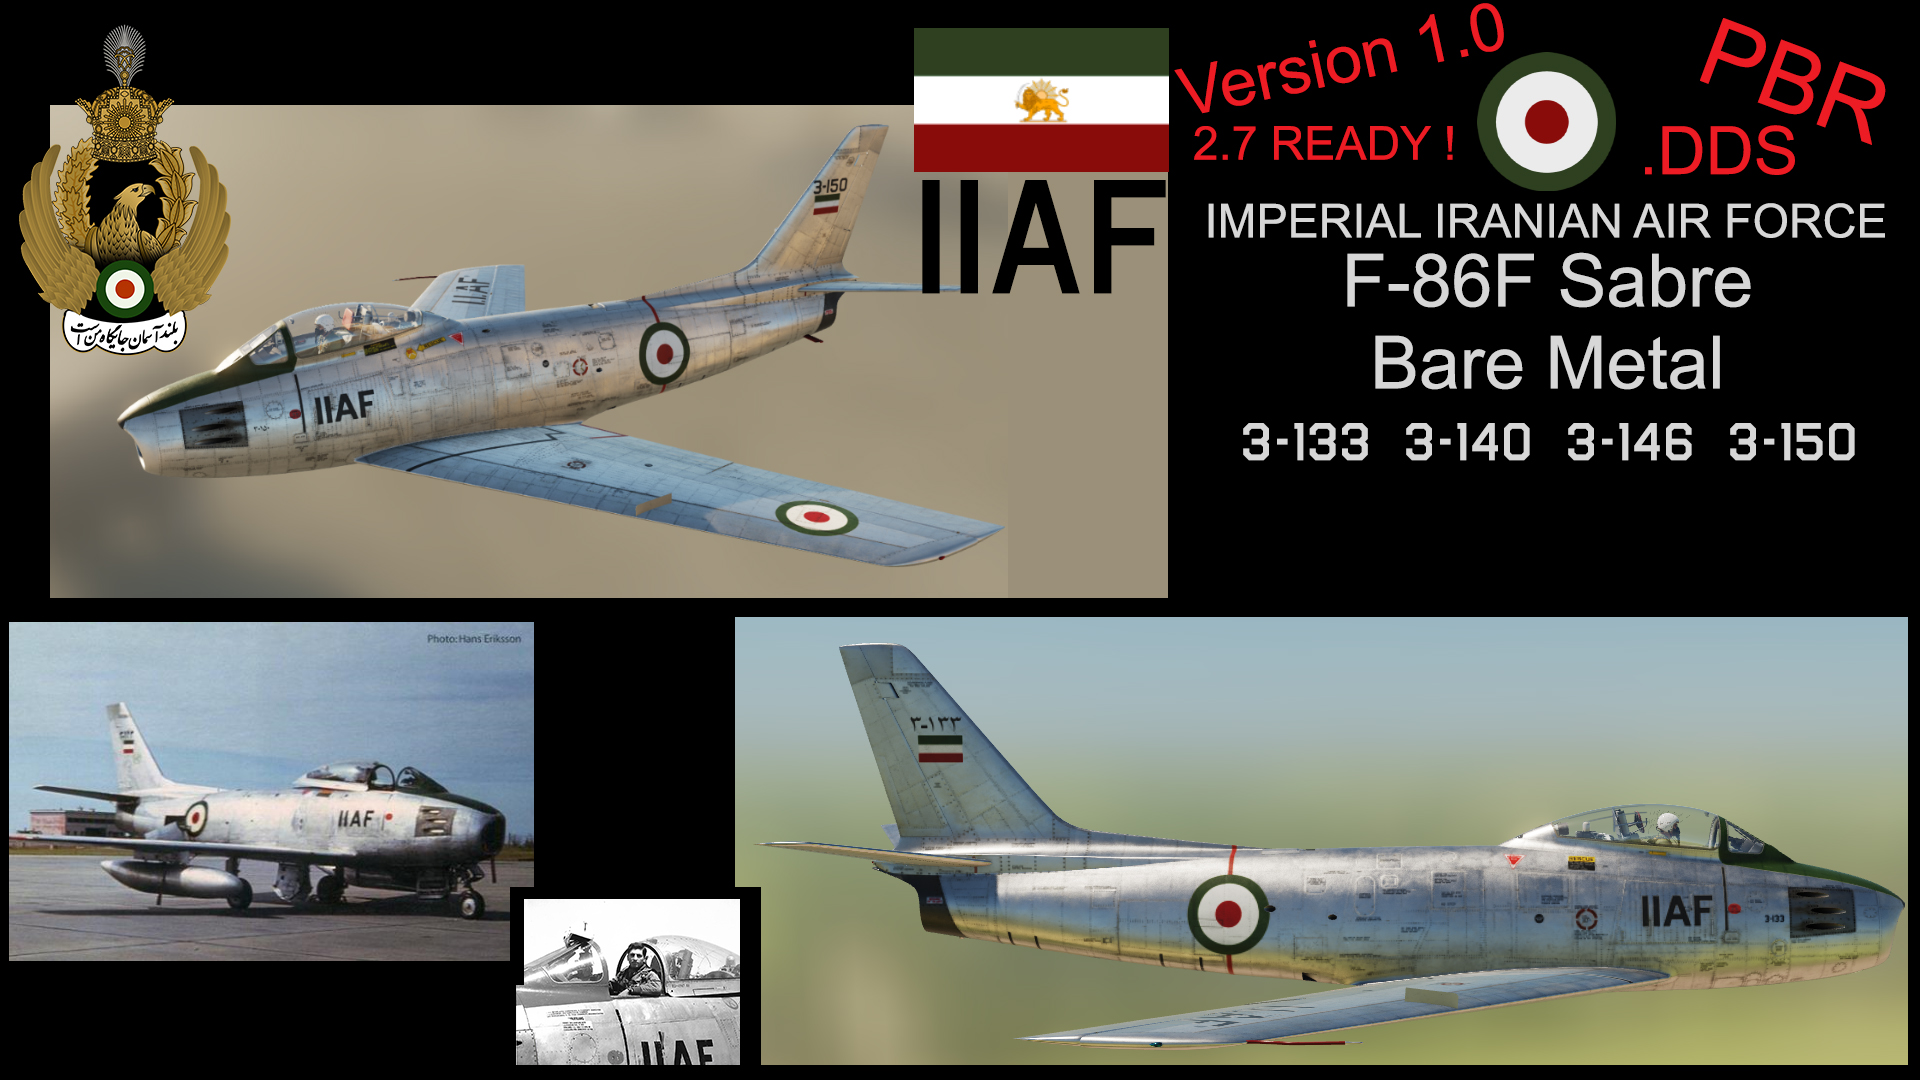 IMPERIAL IRANIAN AIR FORCE ( IIAF ) F-86F SABRE Bare Metal Pack version1.0